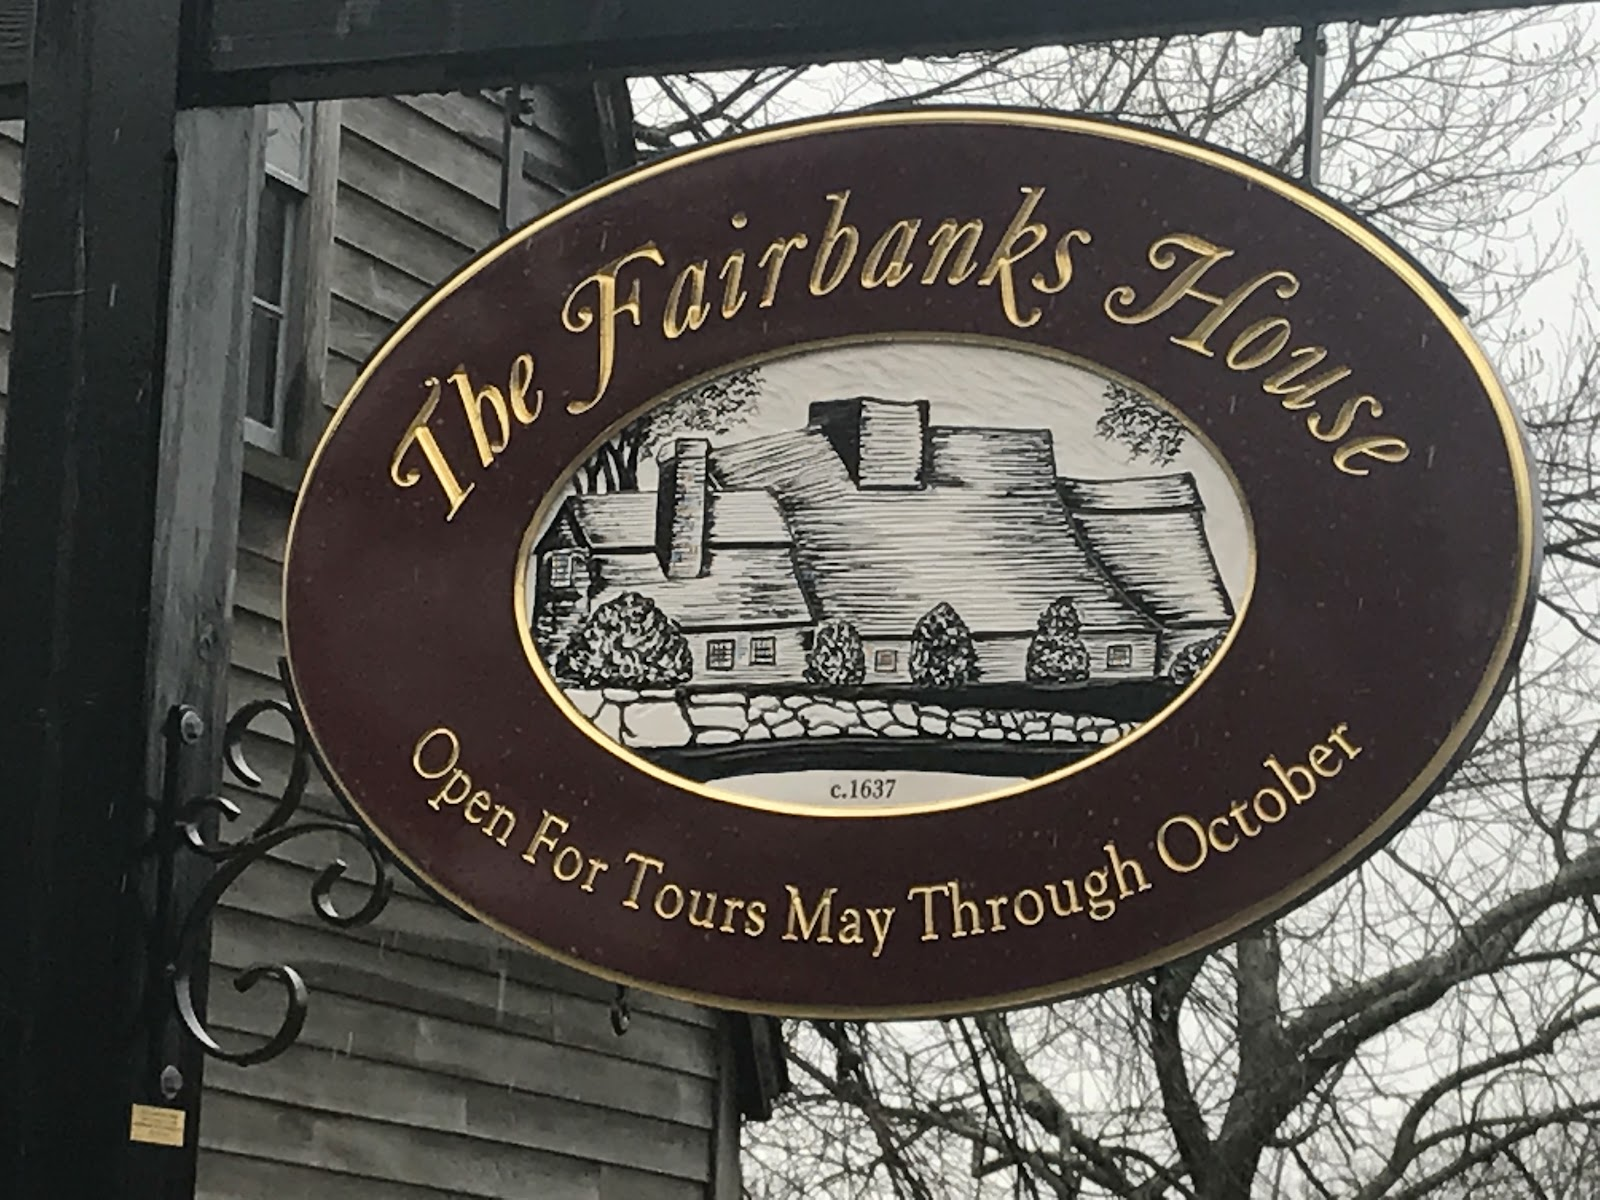 Fairbankshousesign27mar2017.JPG